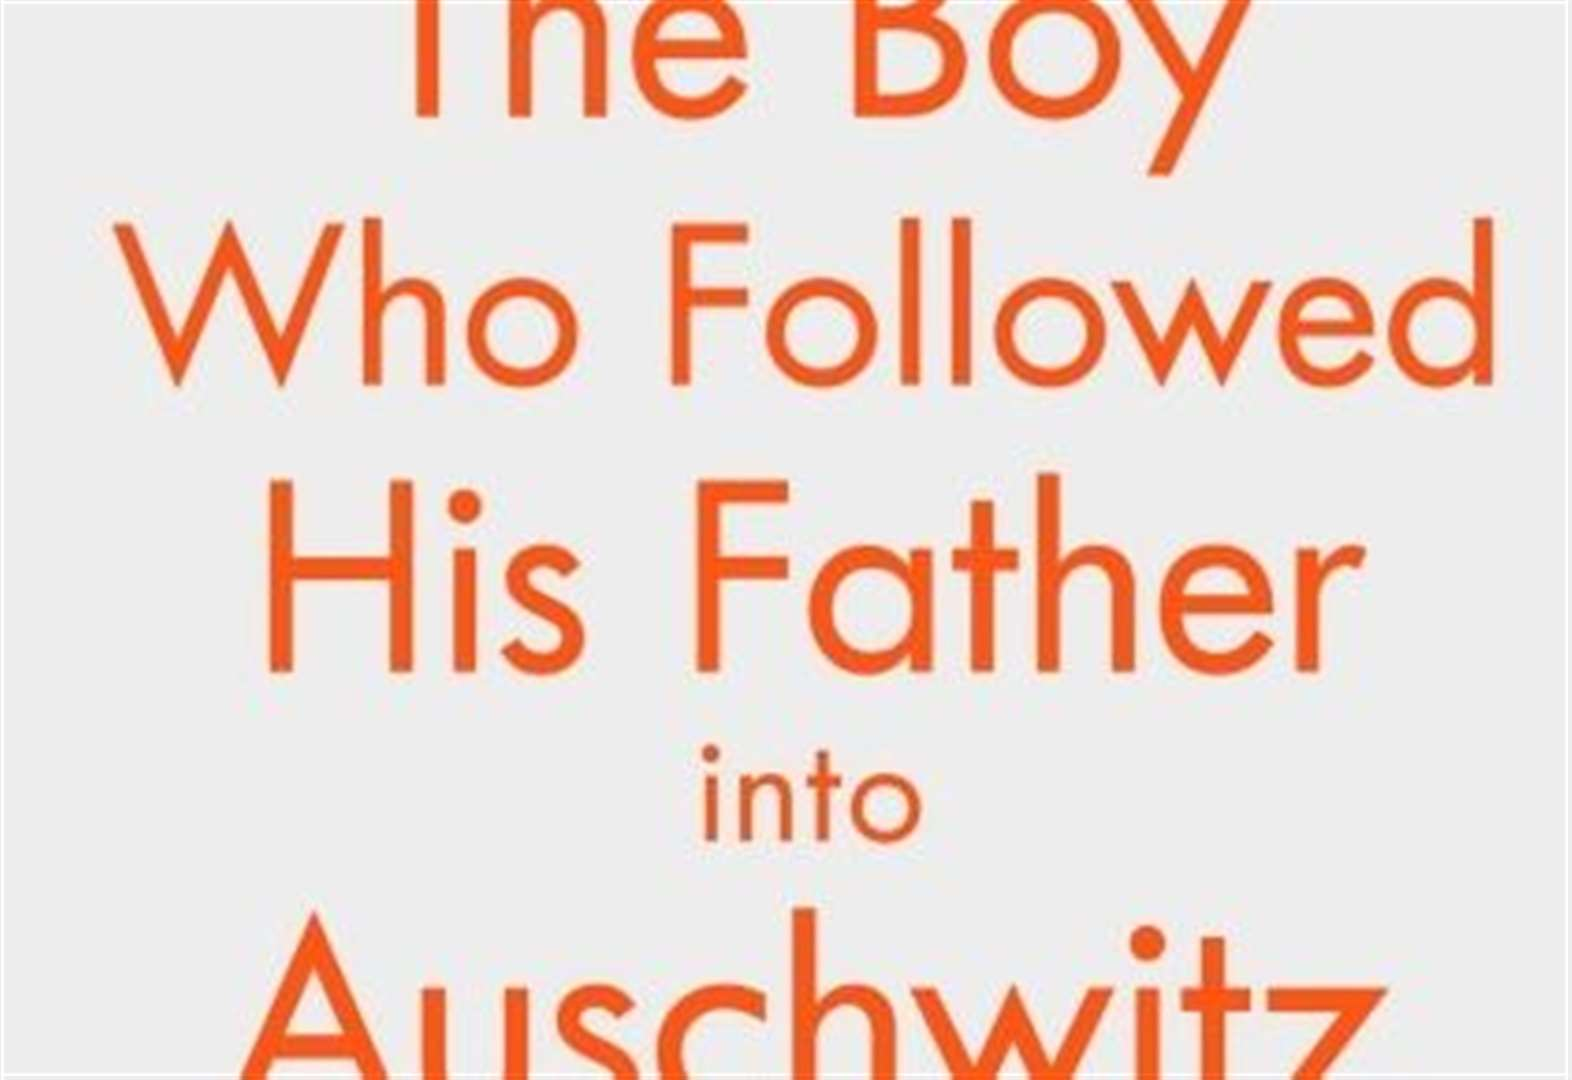 BOOK OF THE WEEK: The Boy Who Followed his Father into Auschwitz